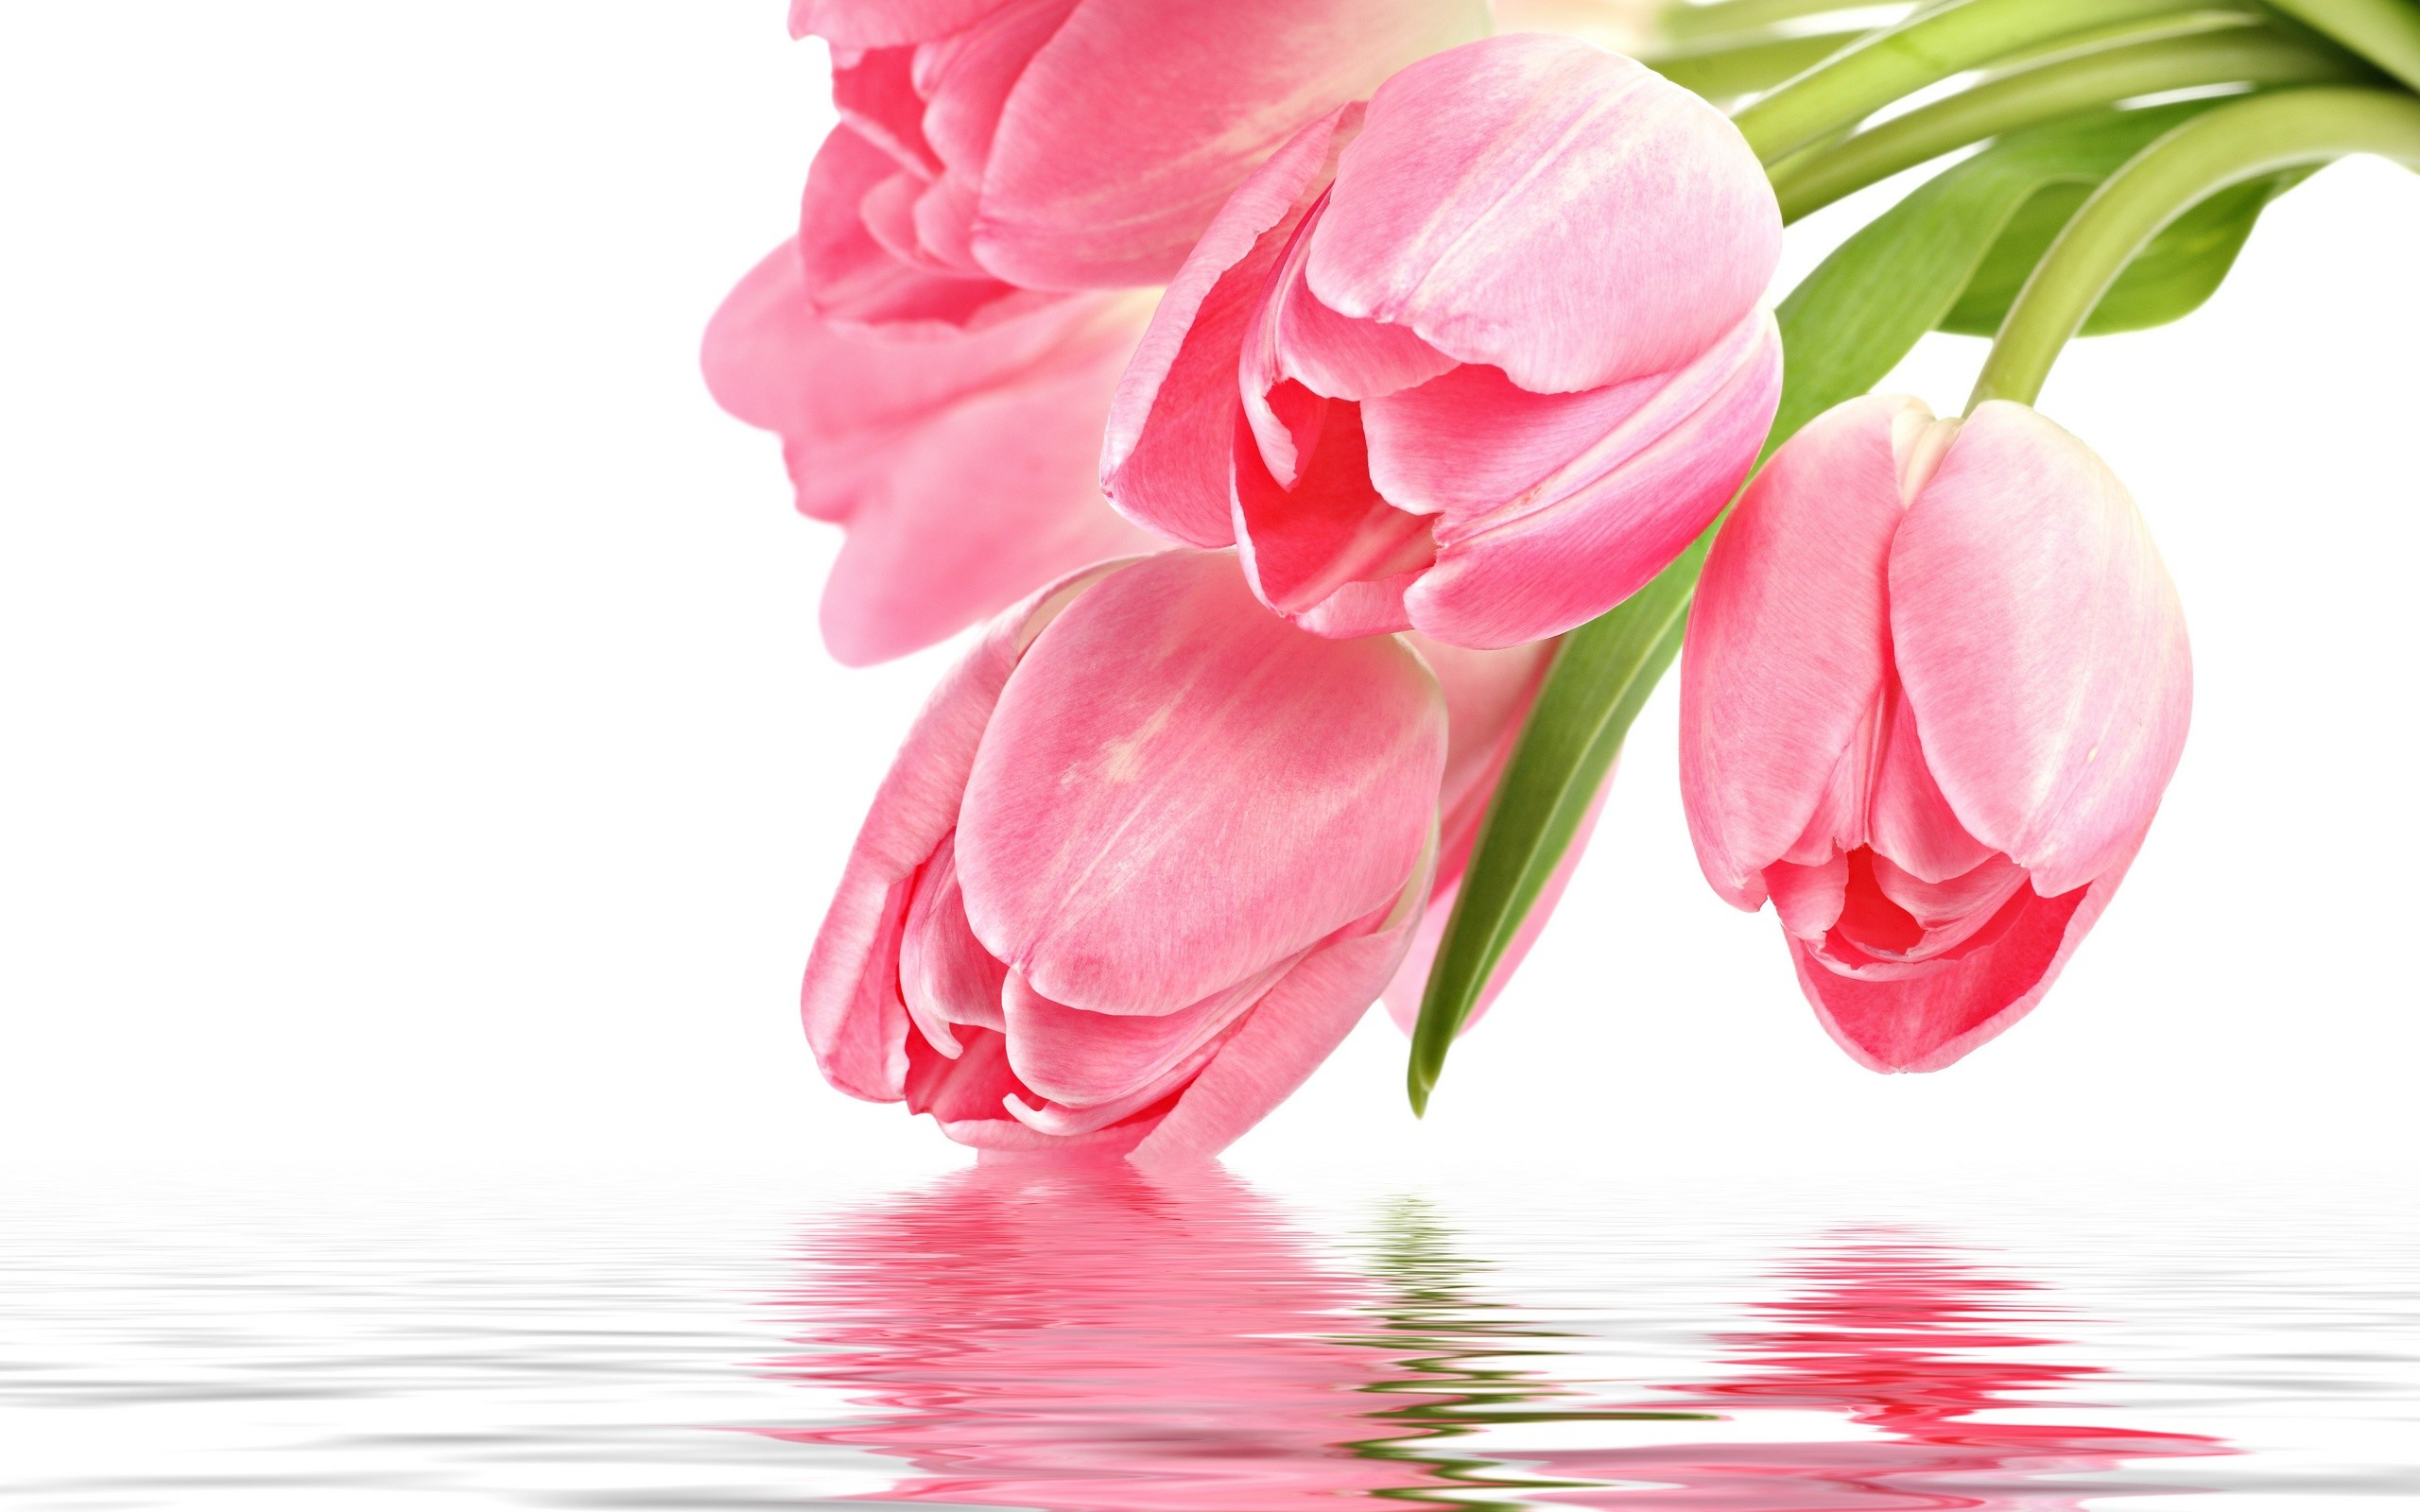 Res: 2560x1600, pink tulips touch of water images download